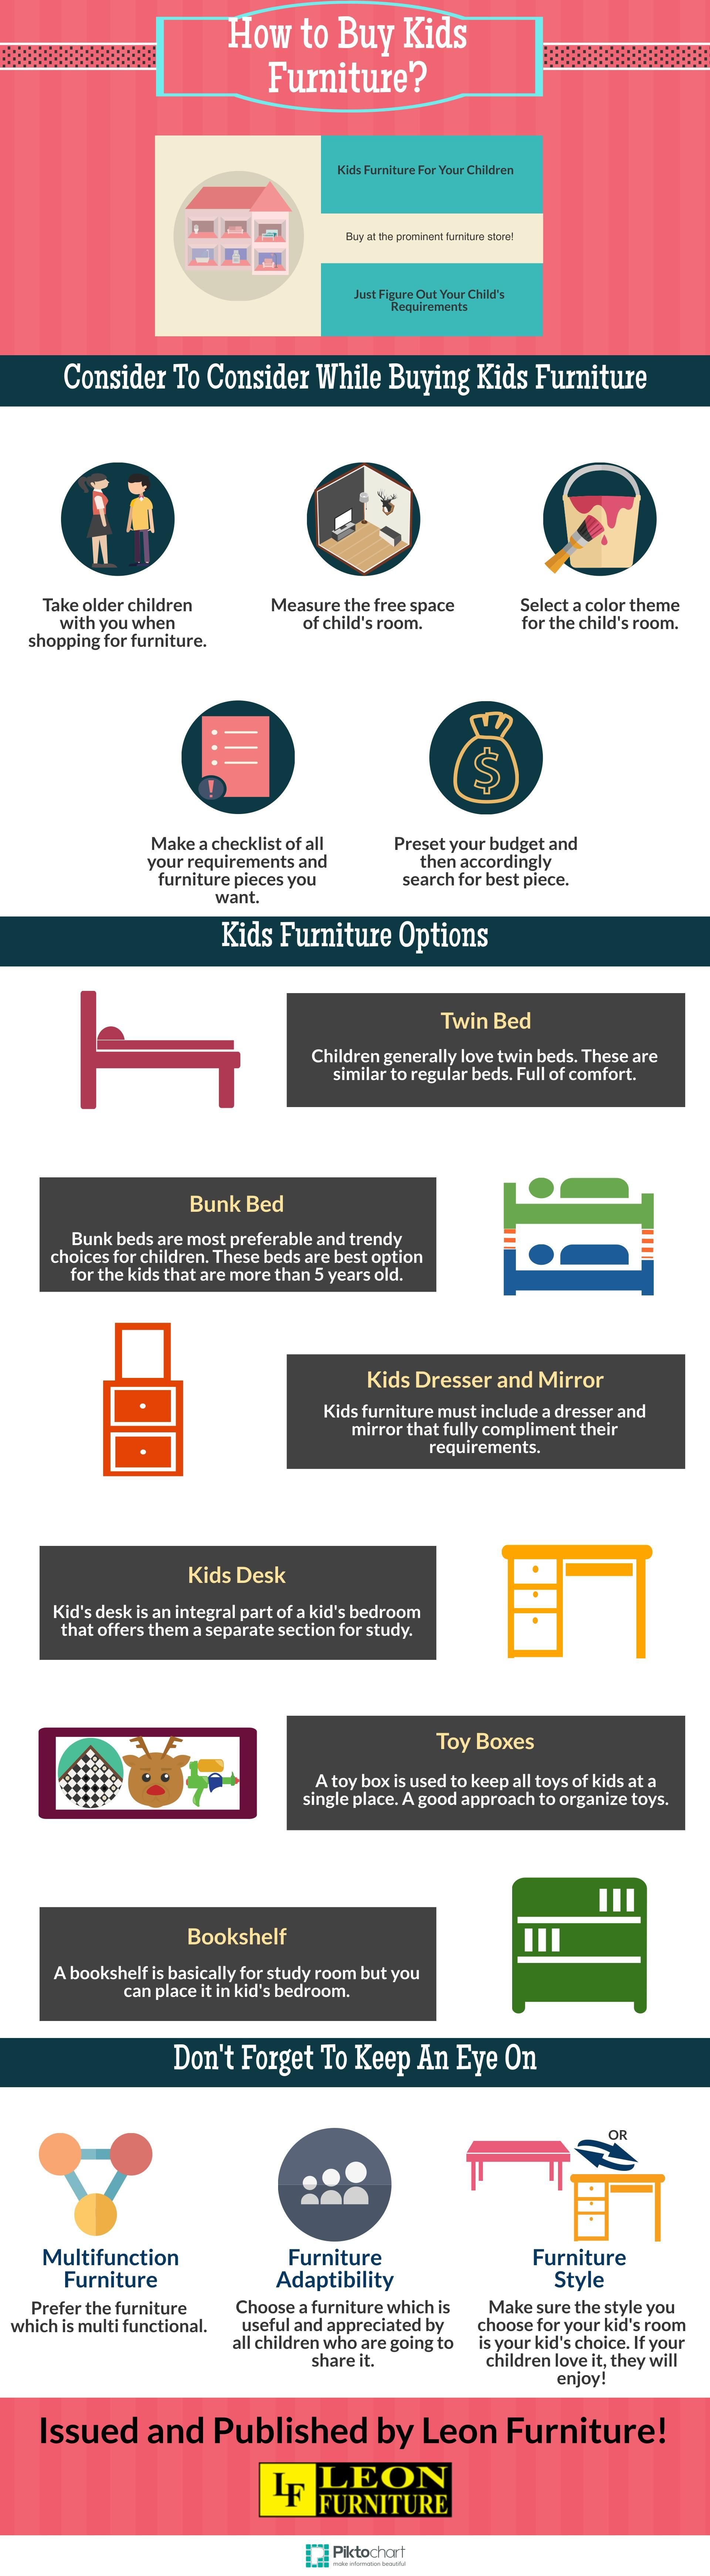 how to buy kids furniture #infographic | kids furniture